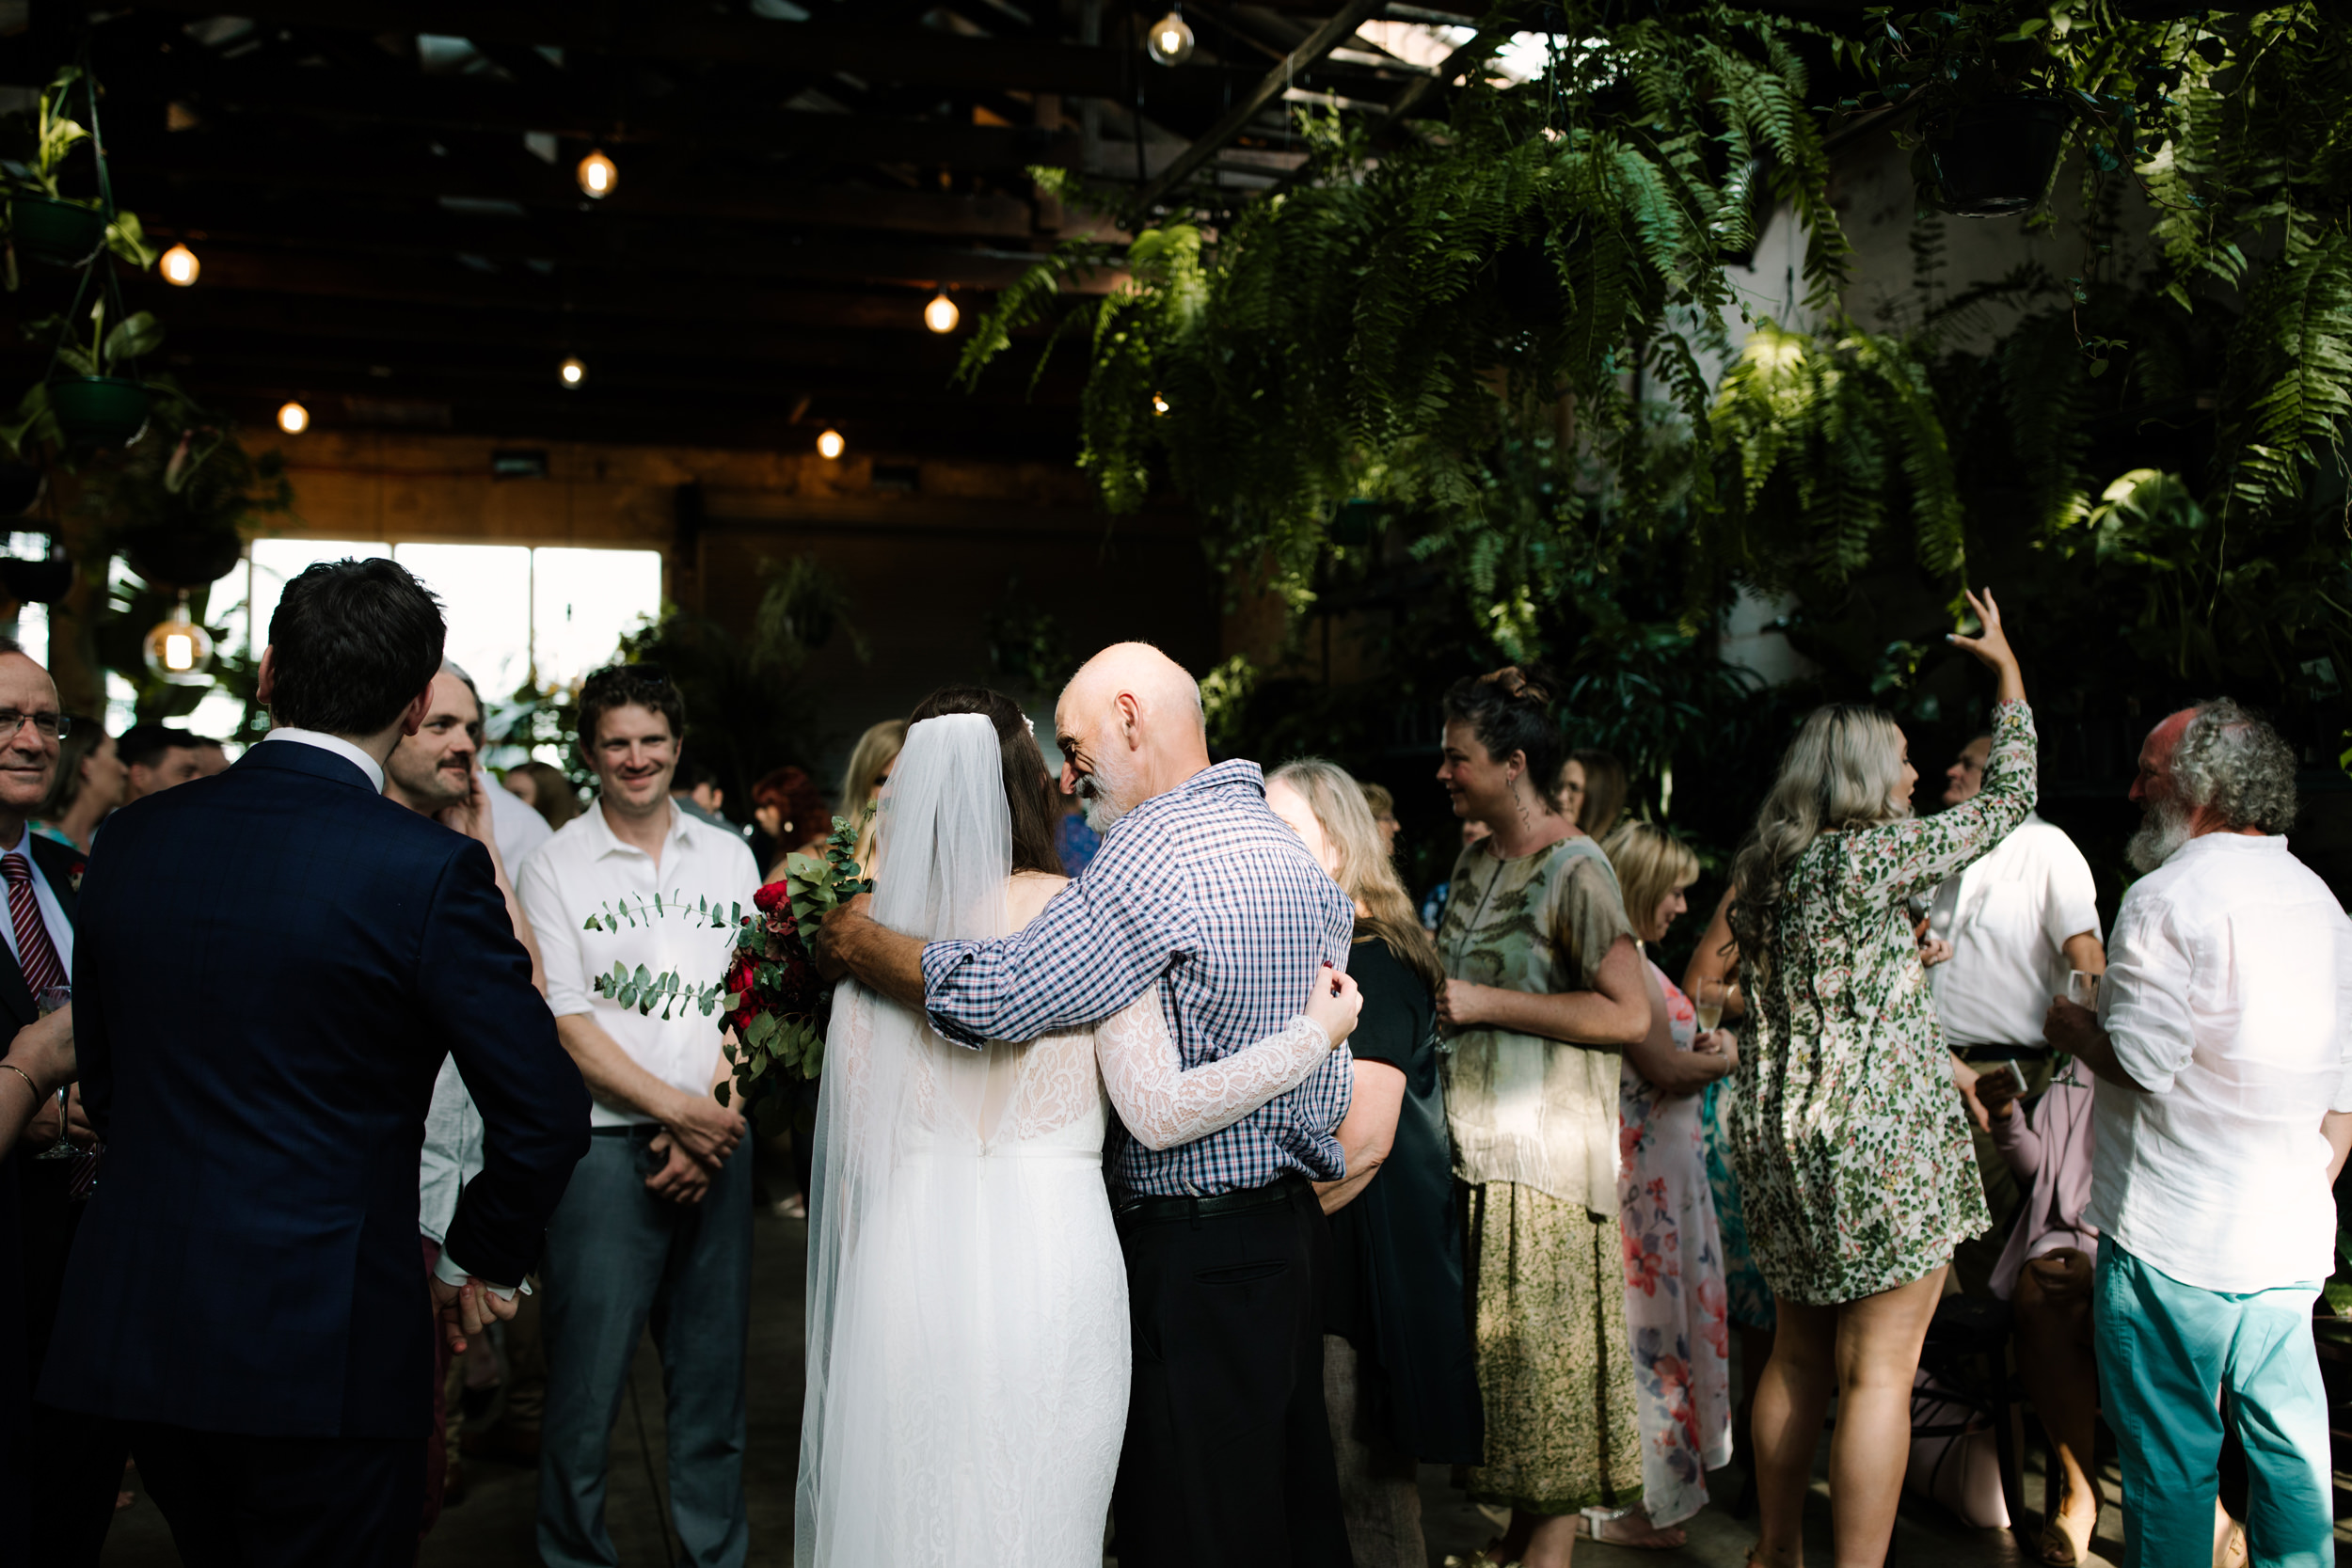 I_Got_You_Babe_Weddings_Emily_Matt_Rupert_Glasshaus_Melbourne0099.JPG